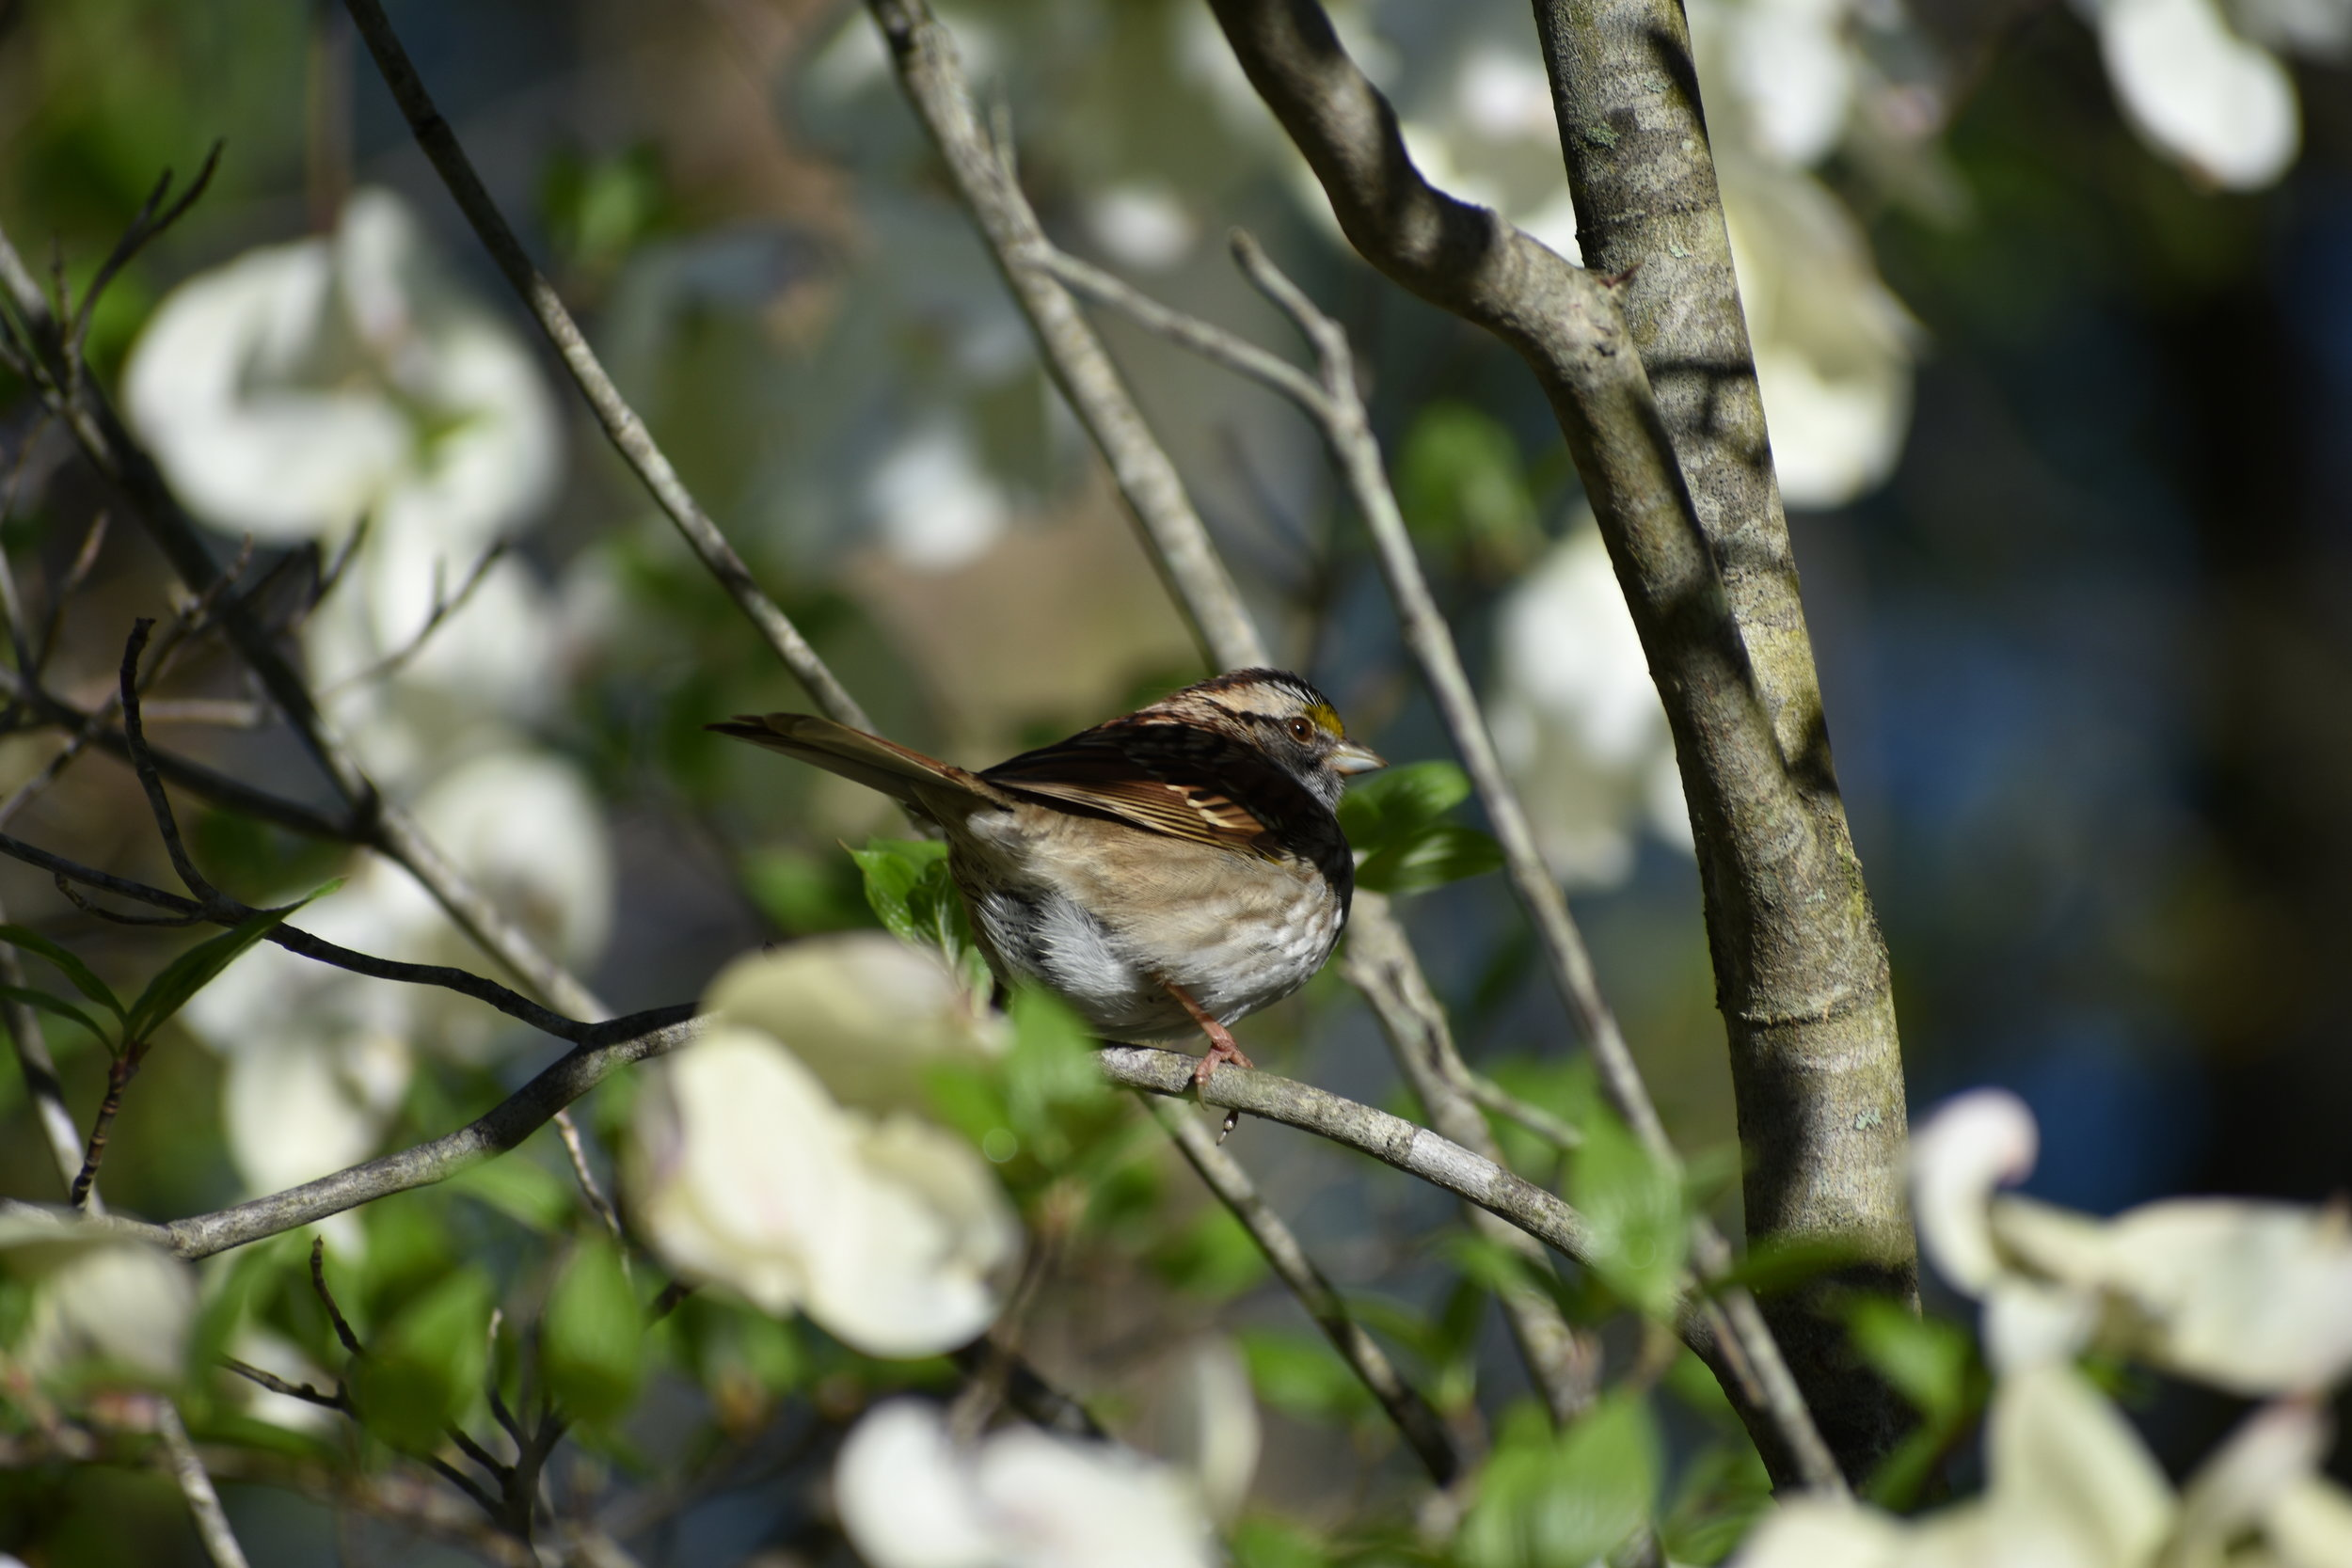 White-Throated Sparrow in Flowering Dogwood